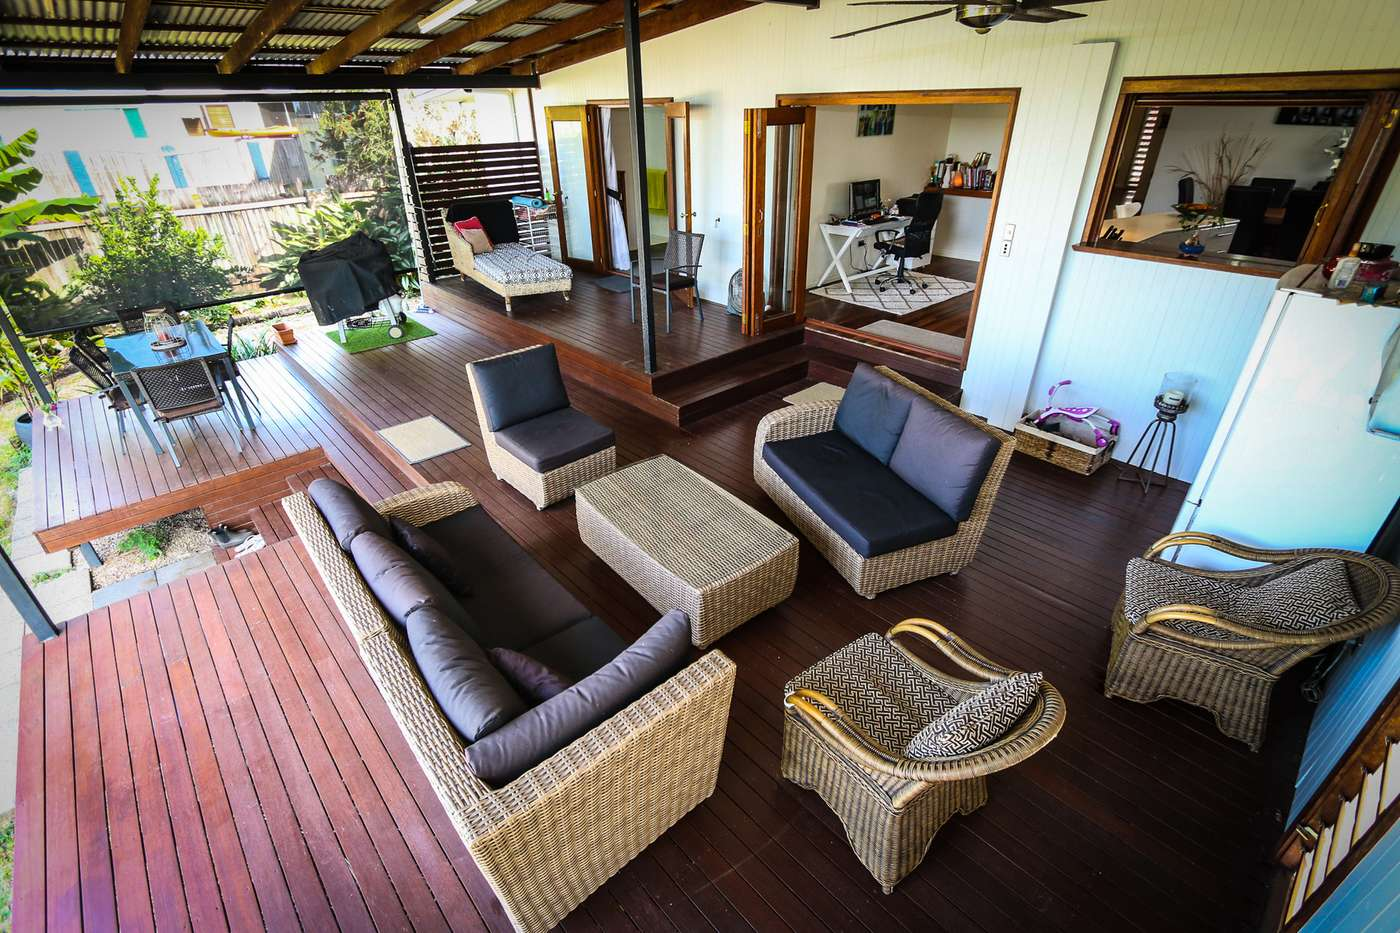 Main view of Homely house listing, 31 Oxley Street, Edge Hill, QLD 4870